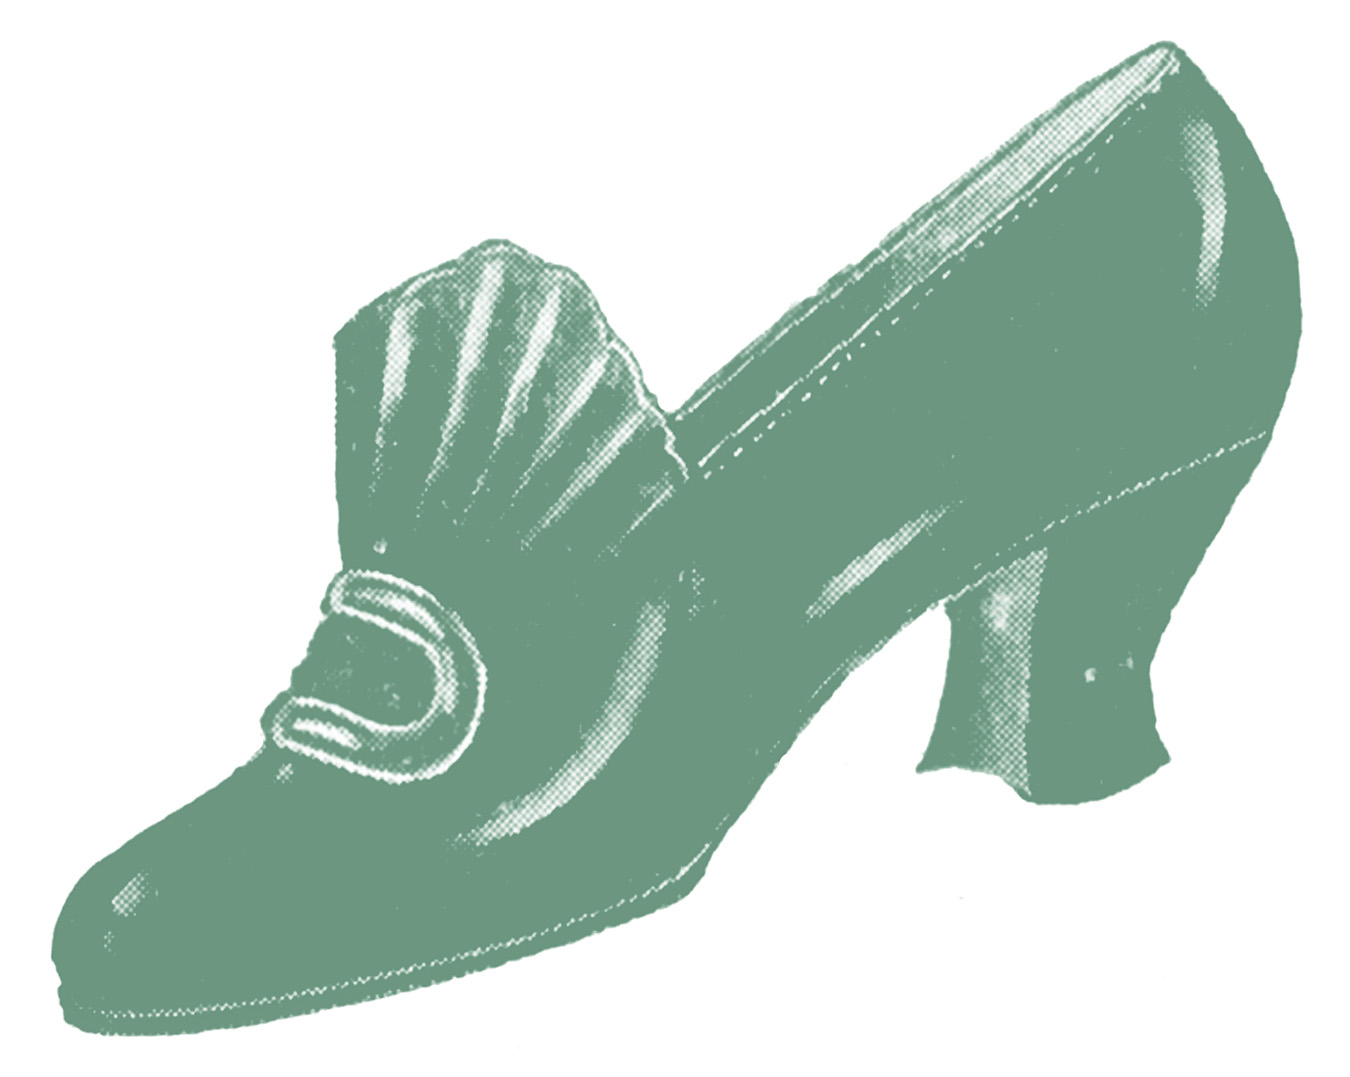 Heels clipart vintage shoe Of Edwardian Catalog Victorian is